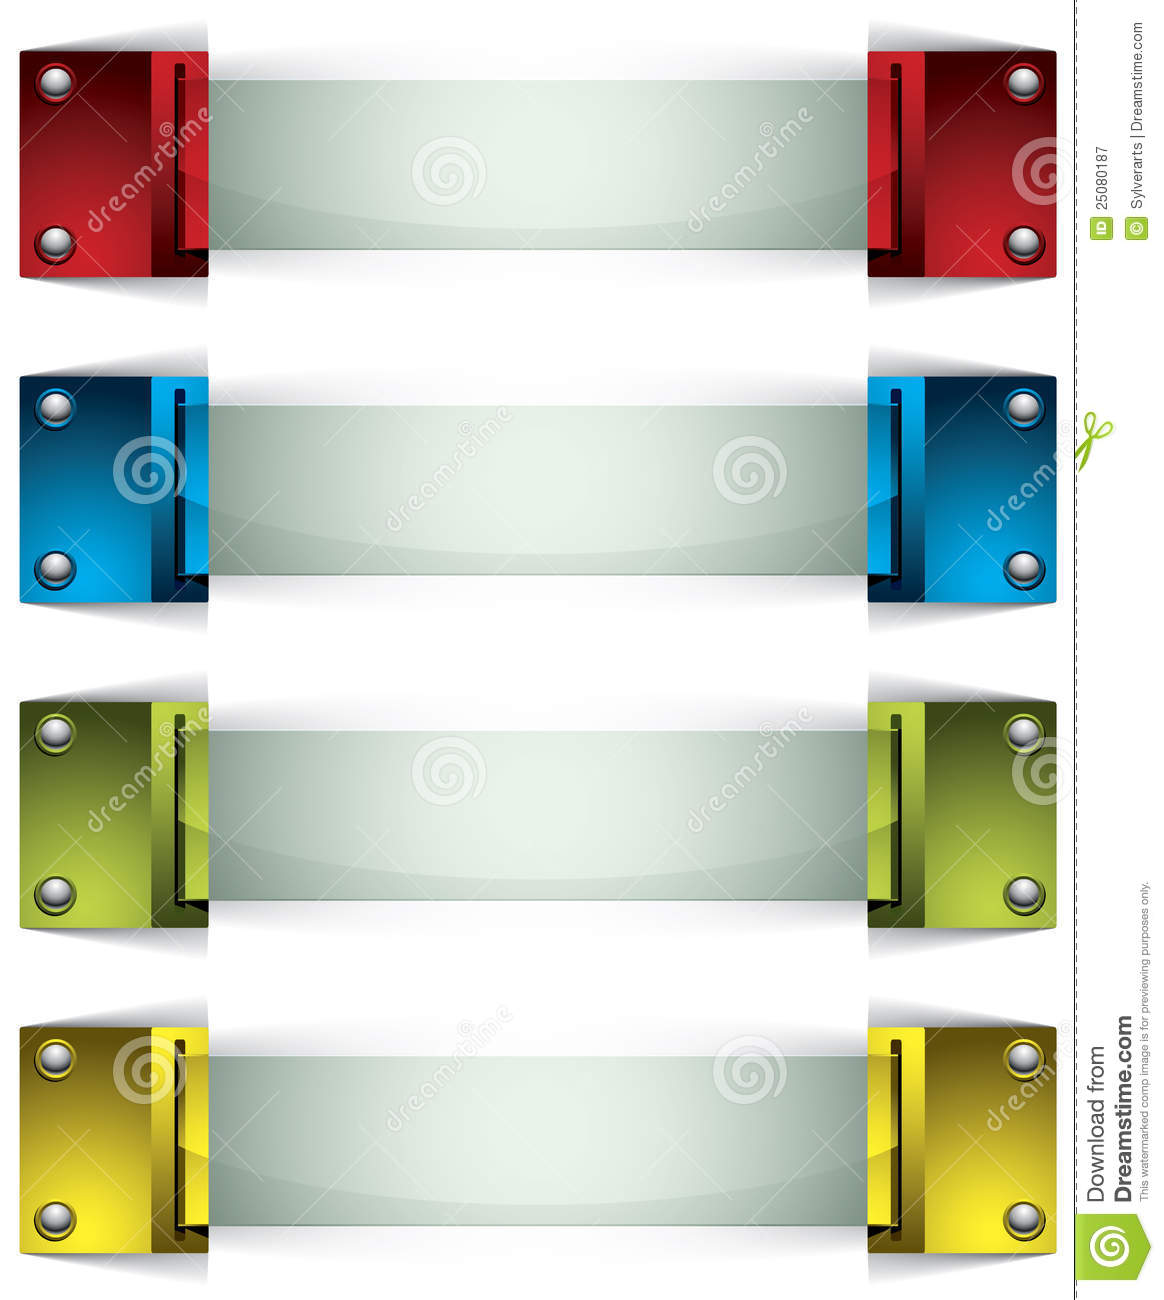 3d Banners With Buttons And Glass. Royalty Free Stock